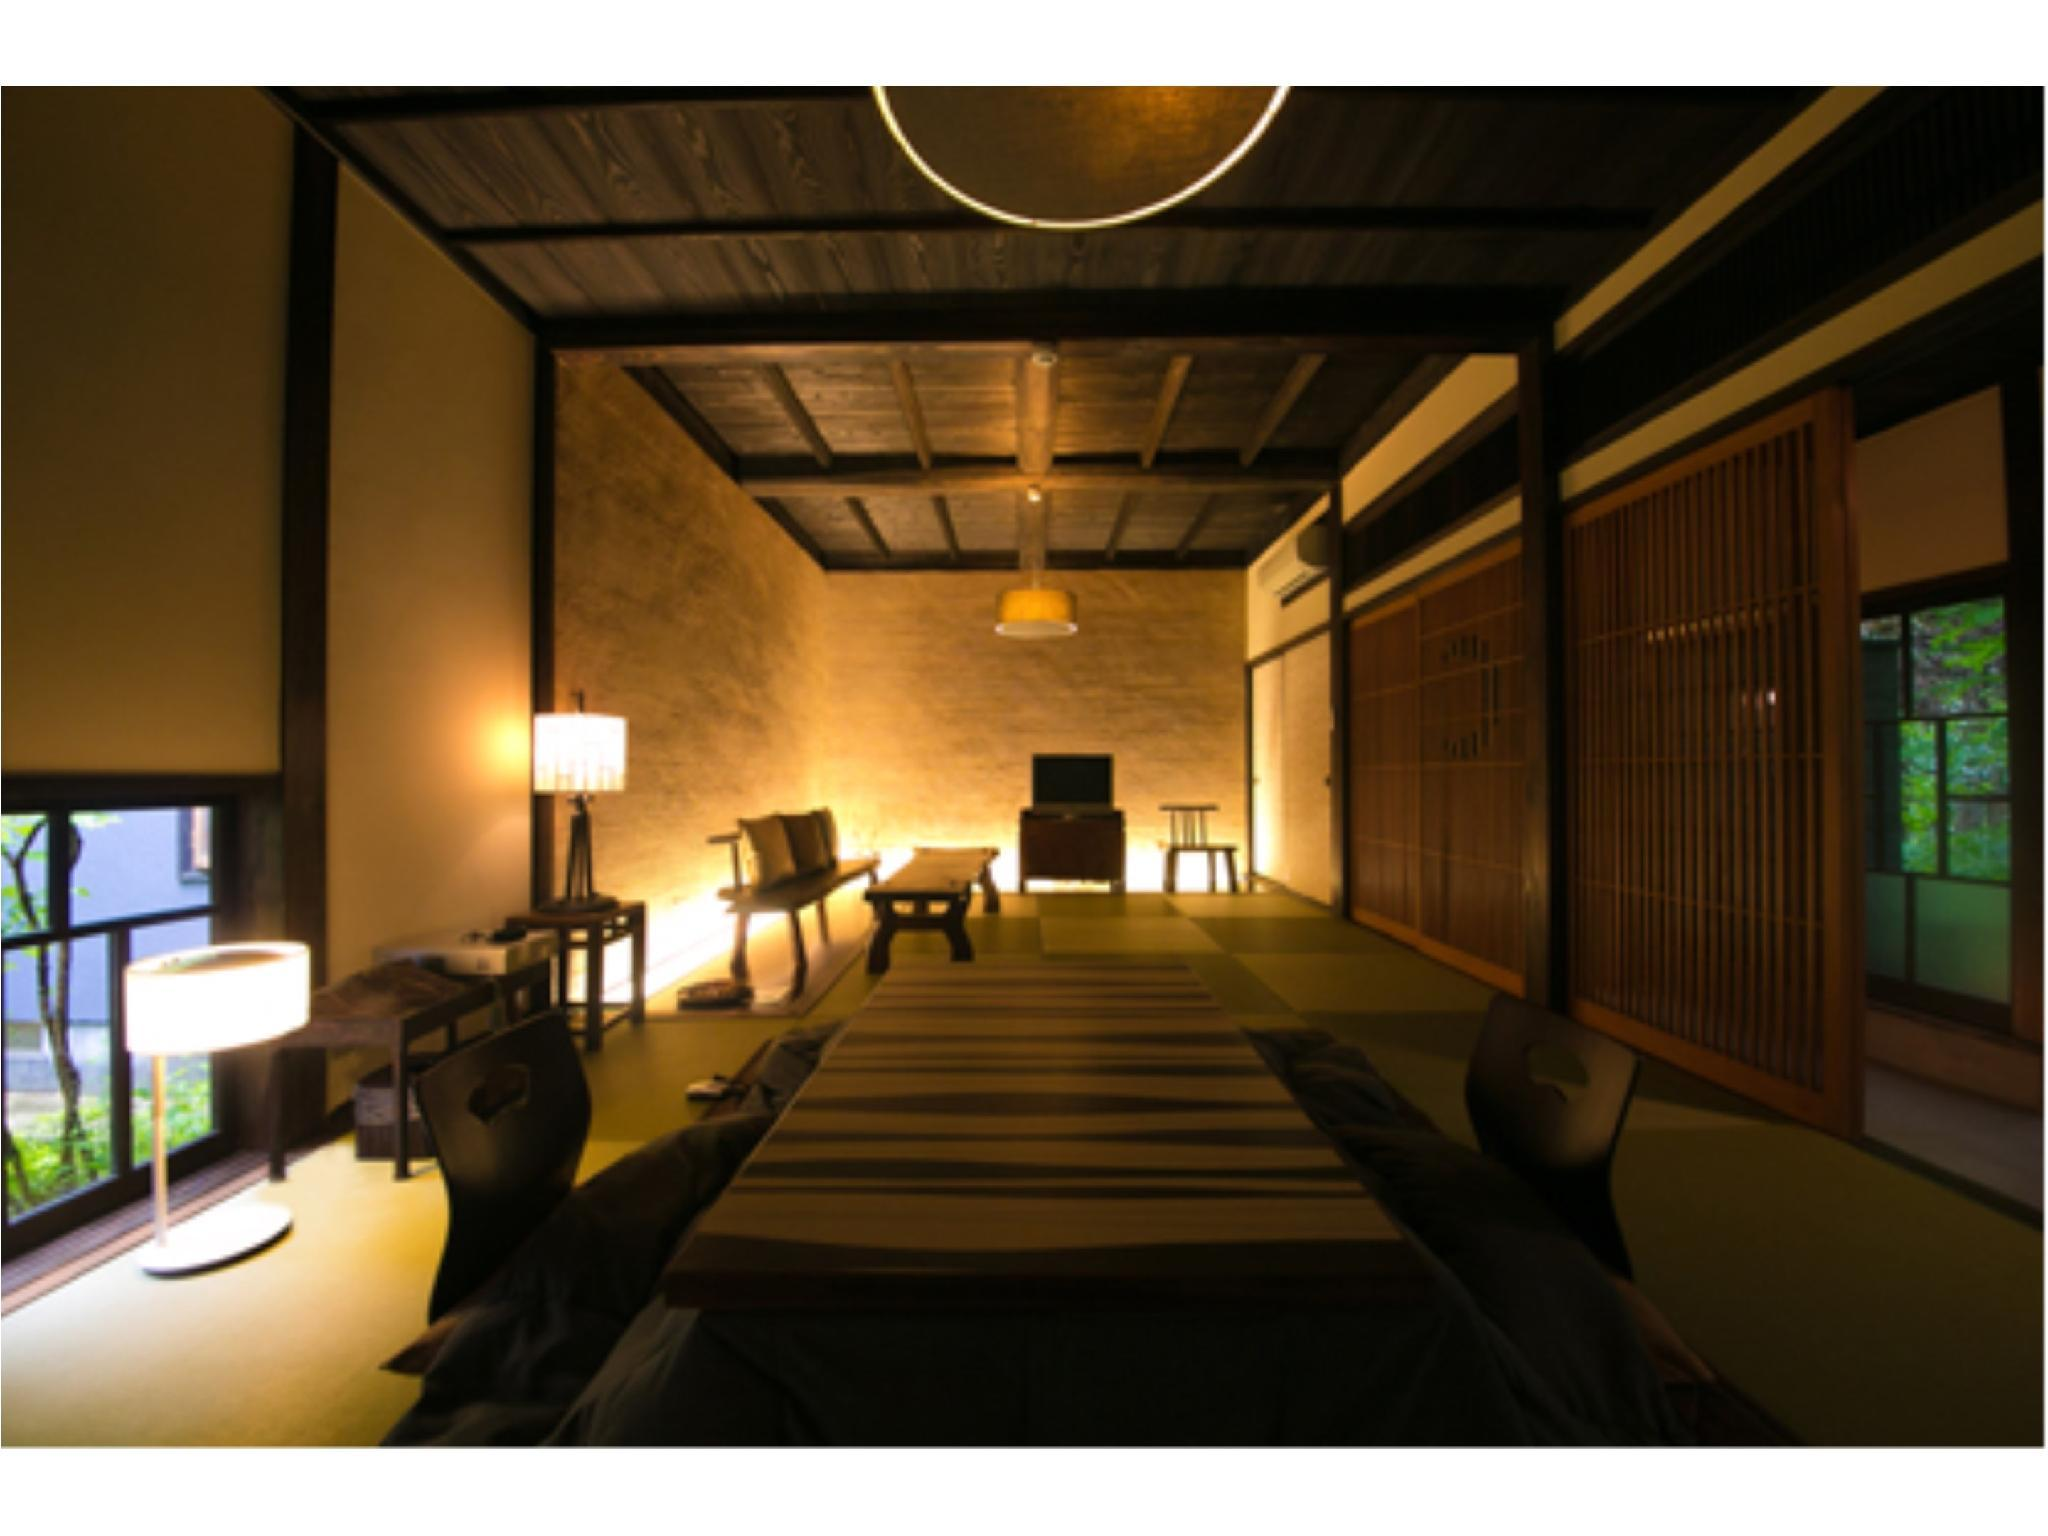 다다미 침대 객실(별채/UTOAN/트윈베드/실내탕) (Detached Japanese/Western-style Twin Room with Indoor Bath (Utoan Type))